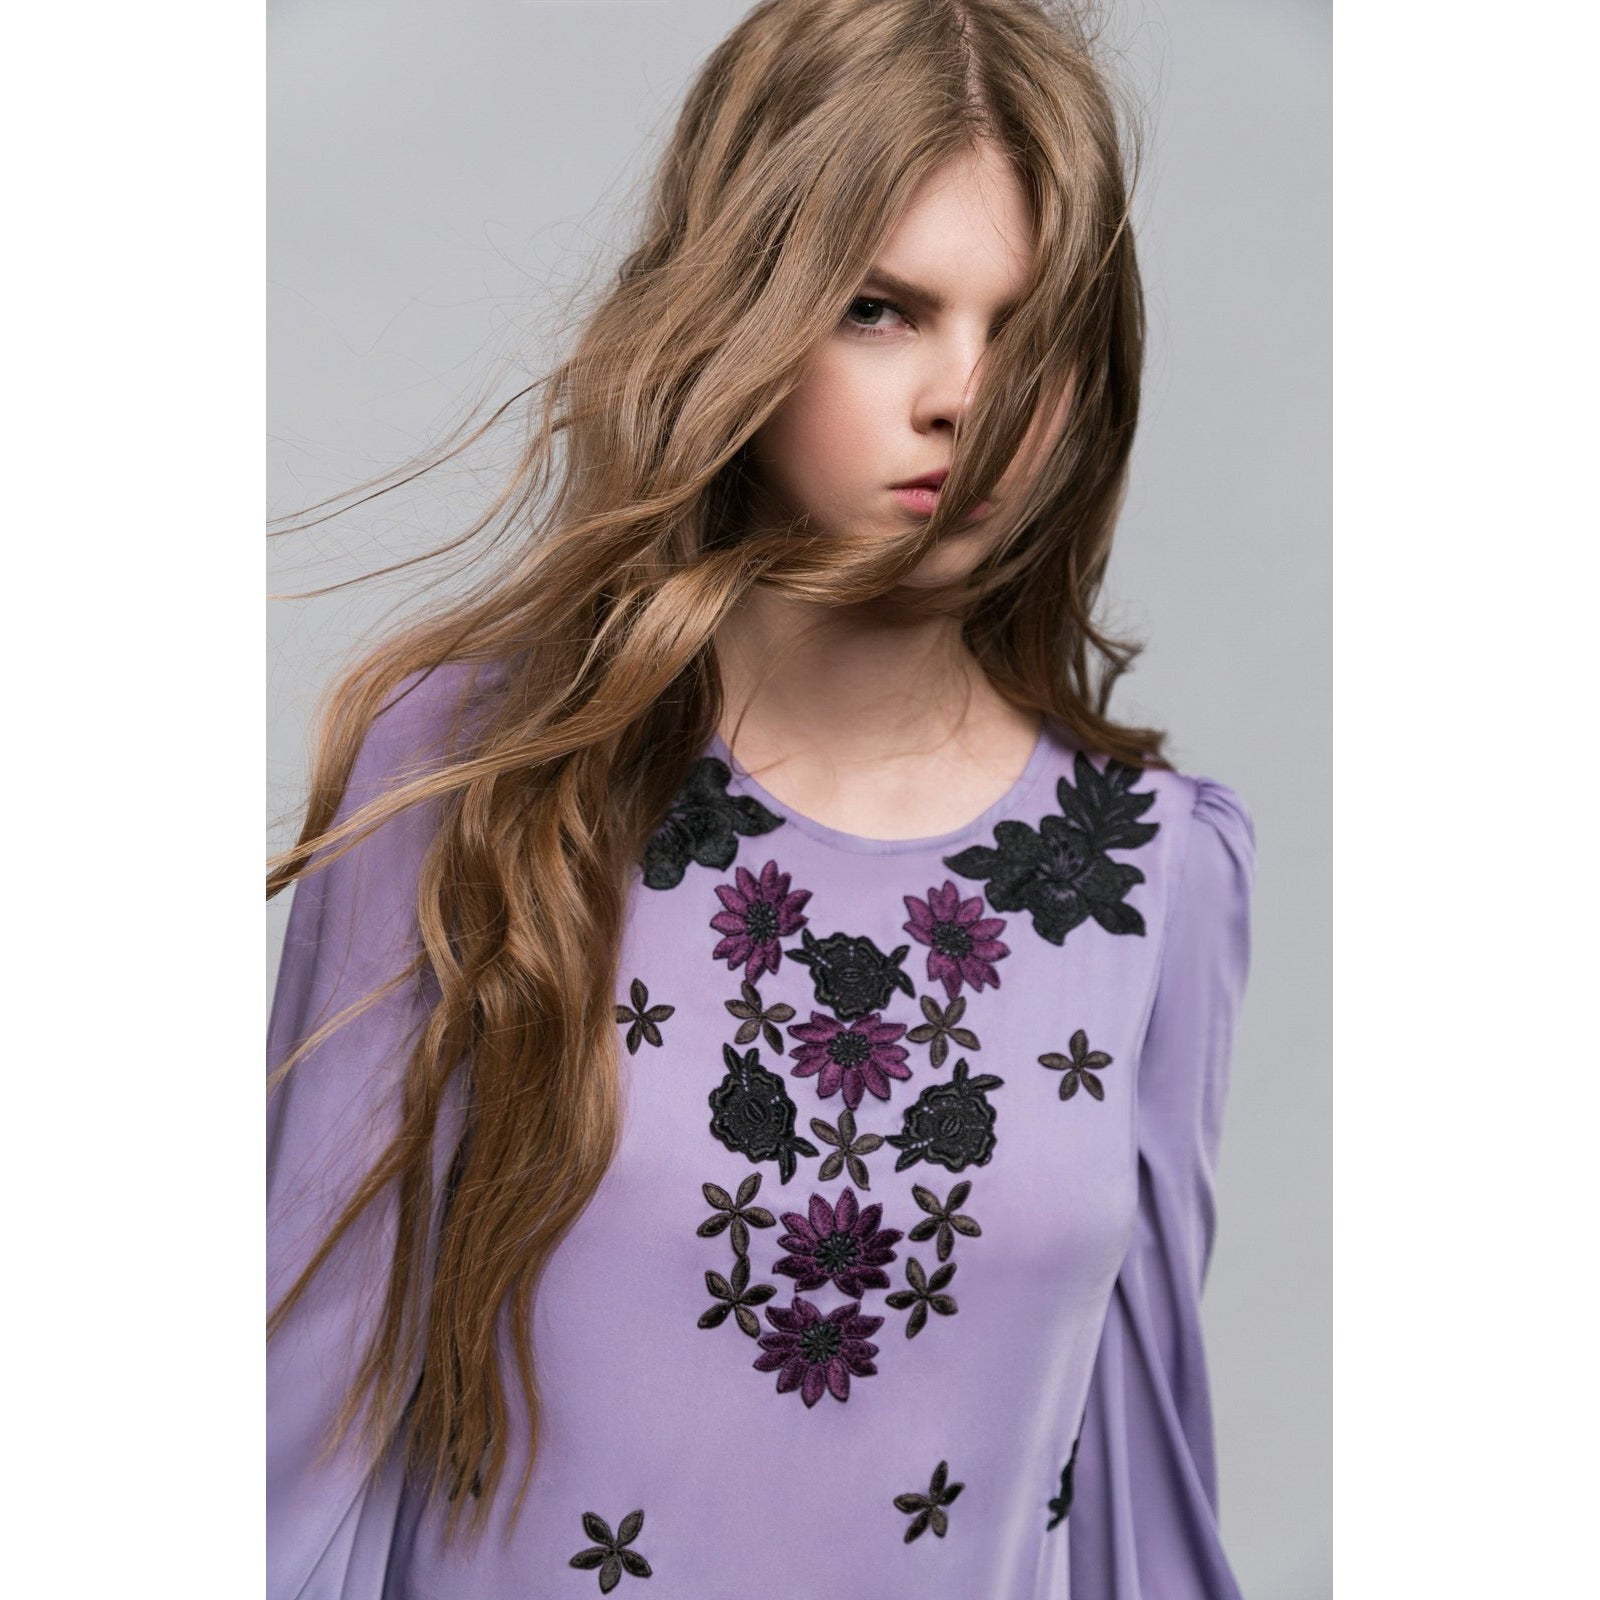 Lavender Silky Embroidery Bohemian Dress Her Deep Blue Eyes-OVER THE SEA-HOUSE of BOTTA